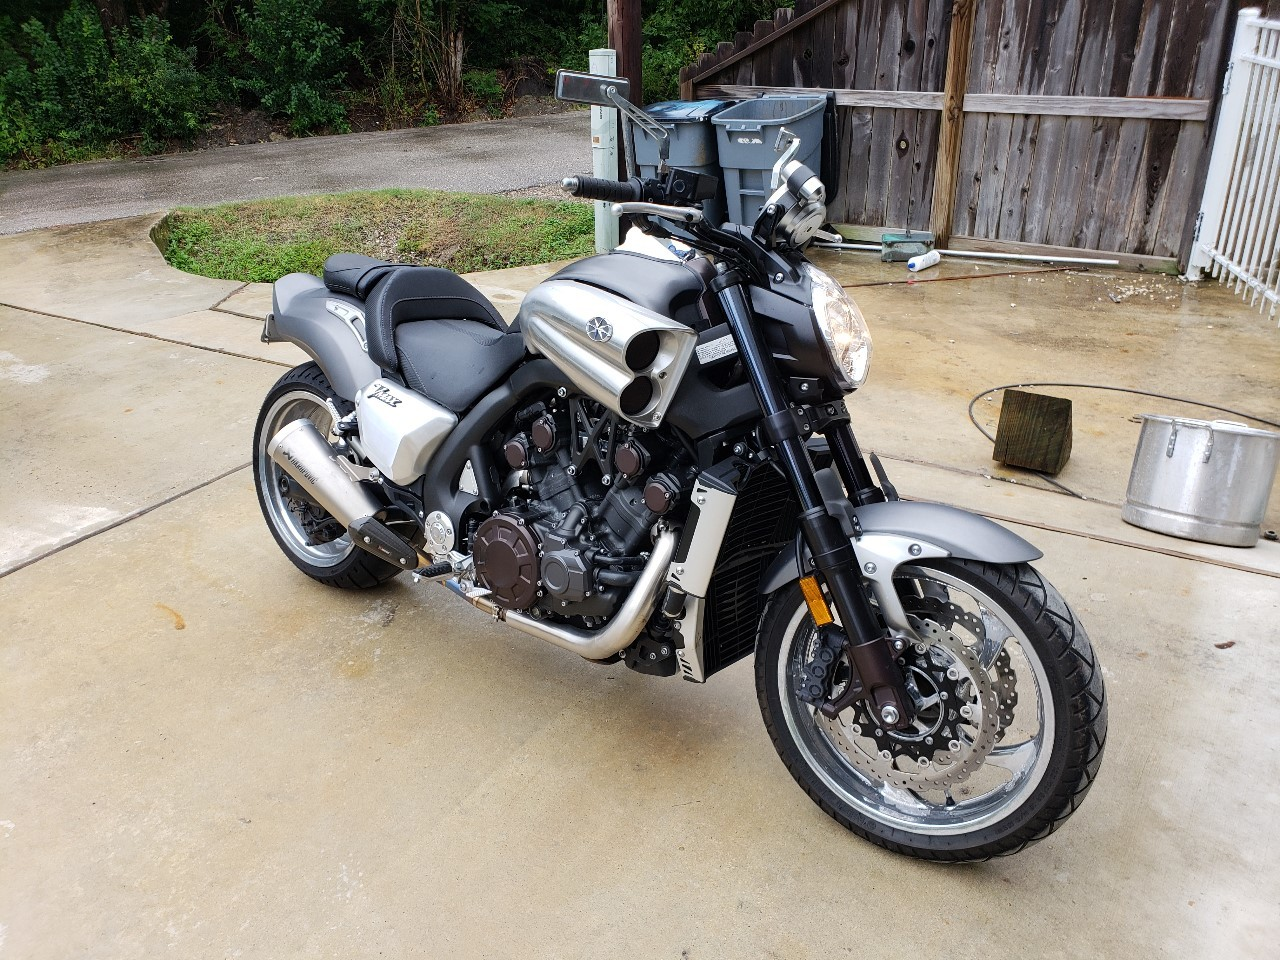 Texas 10 Yamaha Vmax Motorcycles For Sale Cycle Trader Fuel Filter